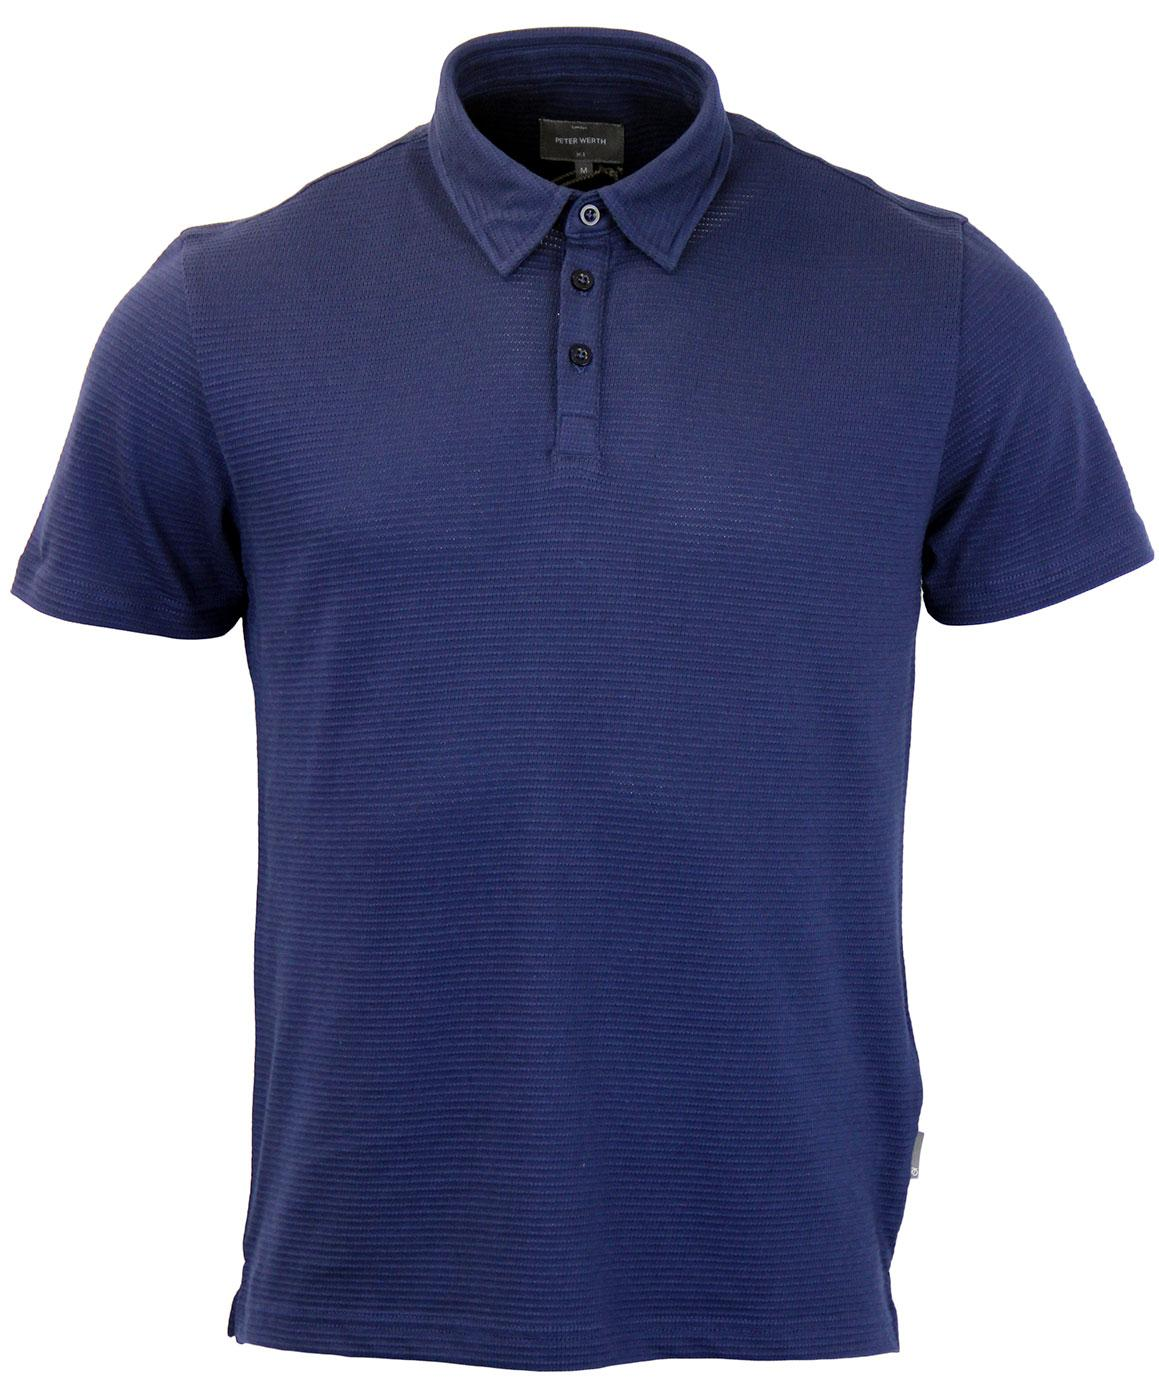 Lombard PETER WERTH Textured Perf Retro Mod Polo N